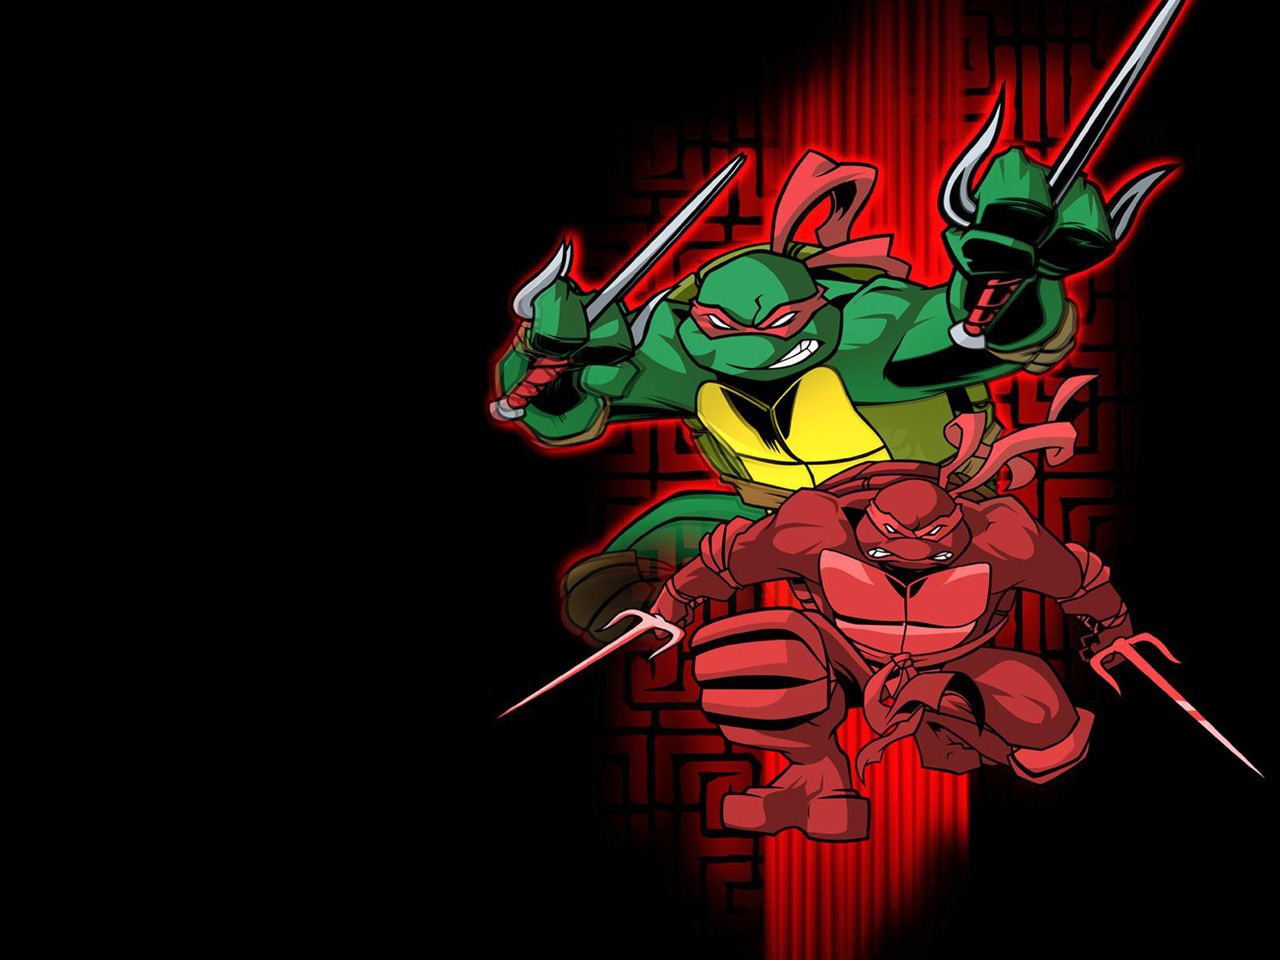 TMNT wallpaper 2003-2009 series (26)